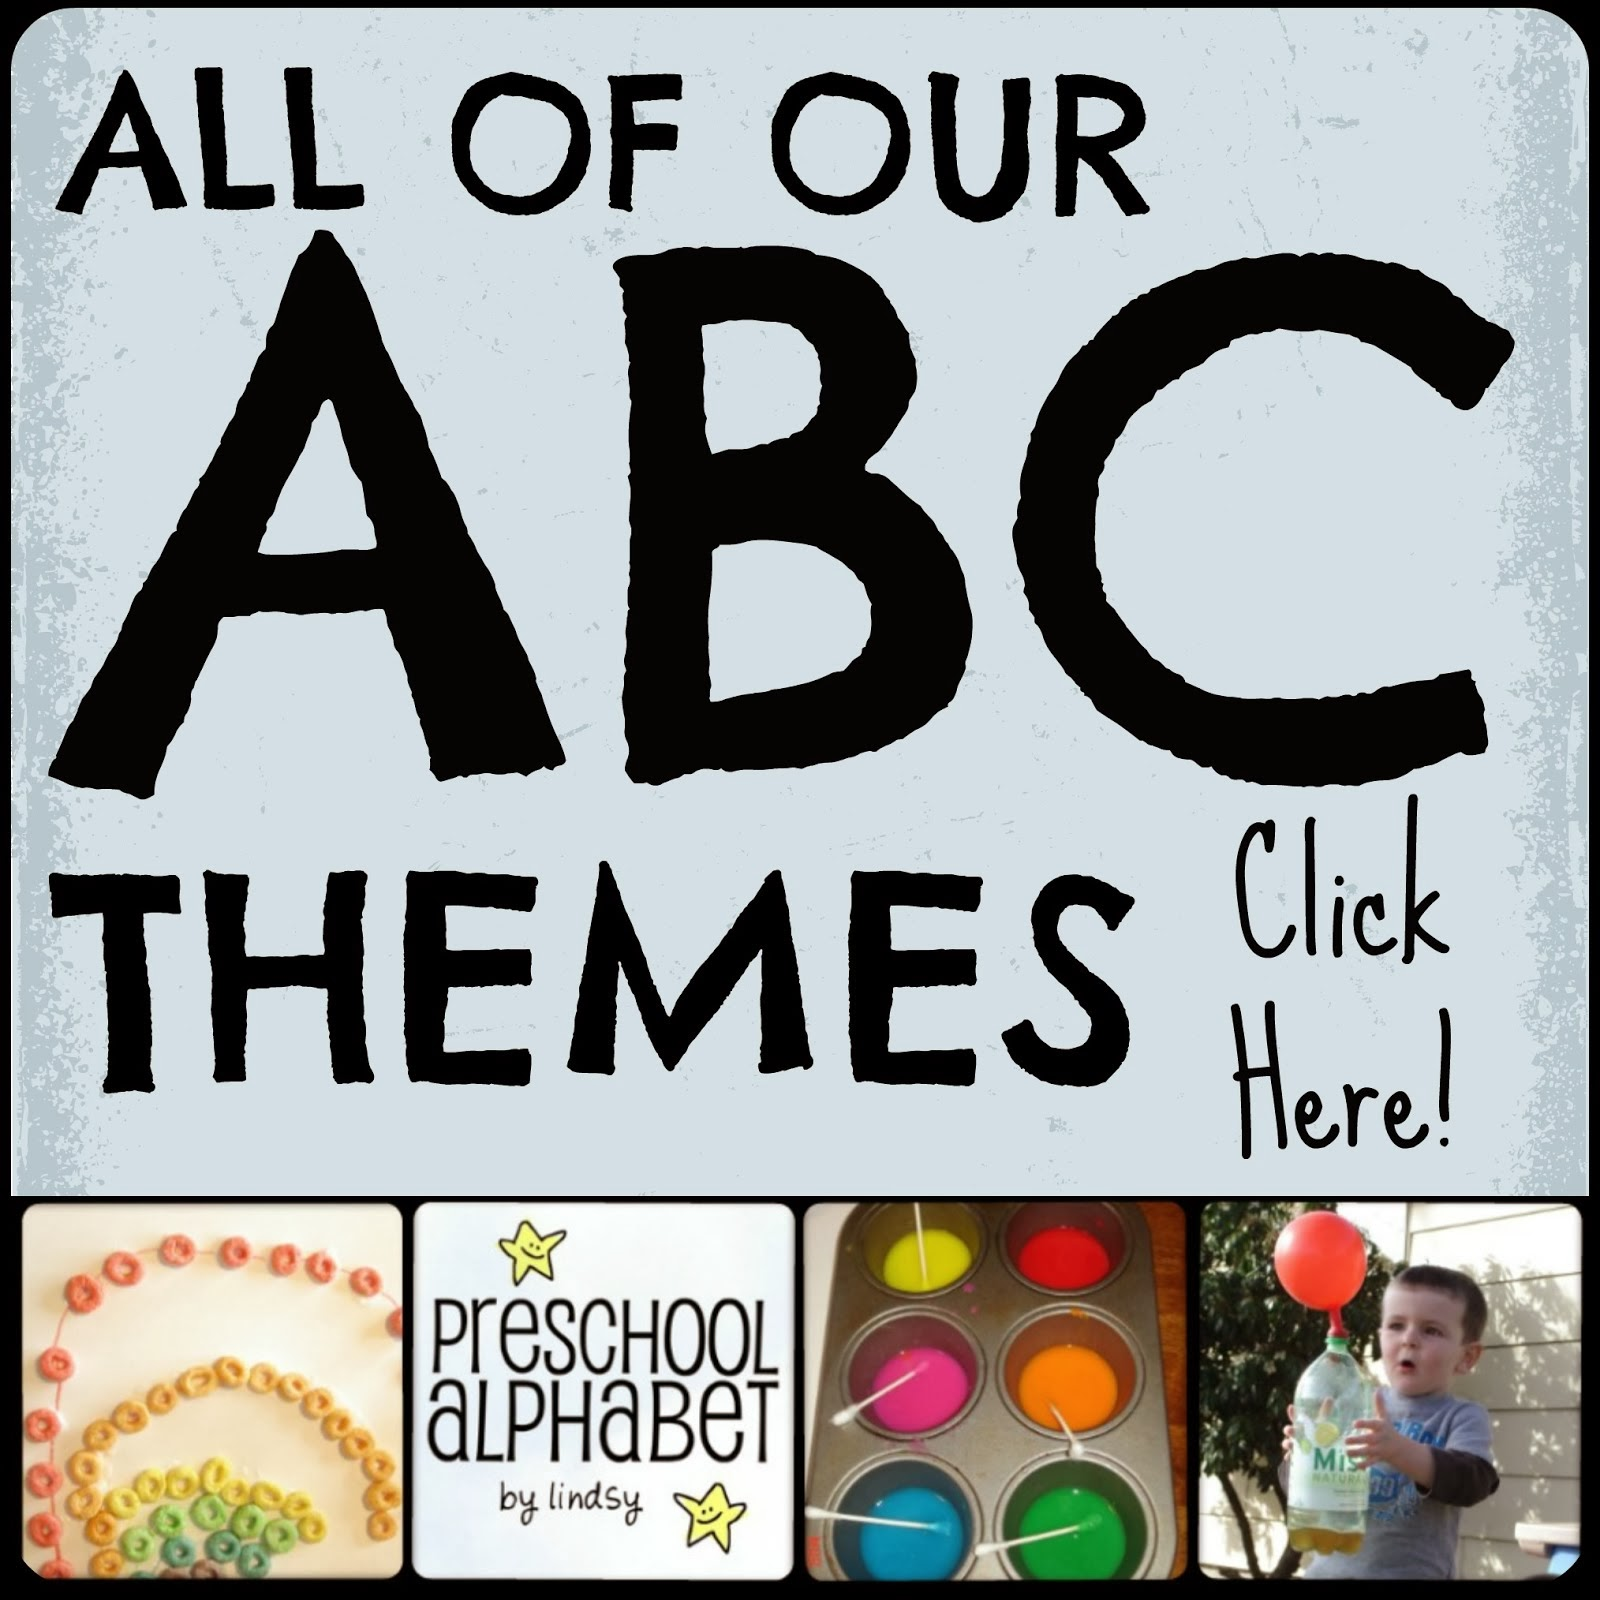 All of our ABC themes